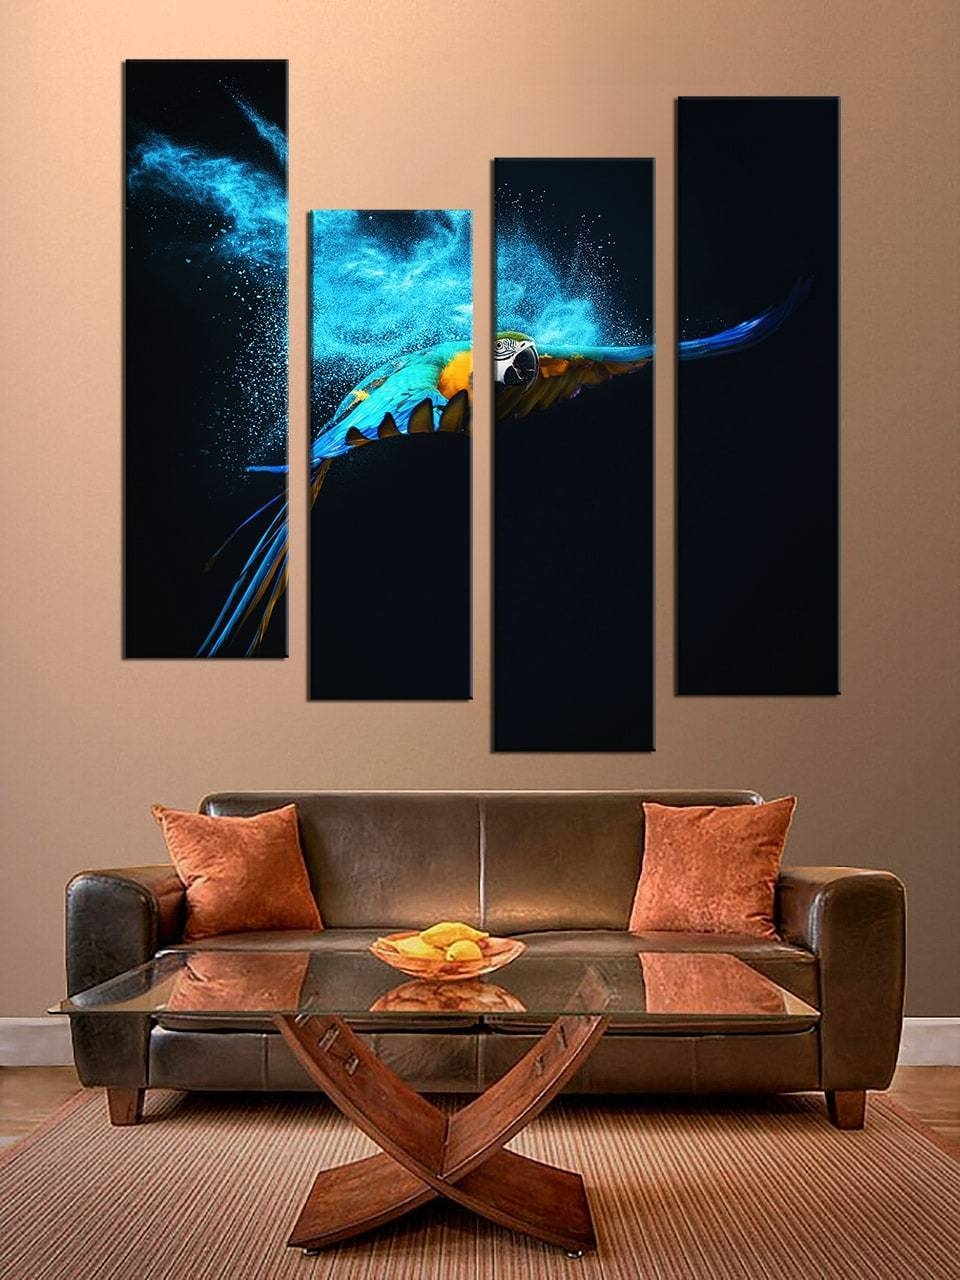 Cozy 4 Piece Wall Art Home Daccor Piece Canvas 4 Piece Abstract Regarding 2017 4 Piece Wall Art Sets (View 8 of 20)